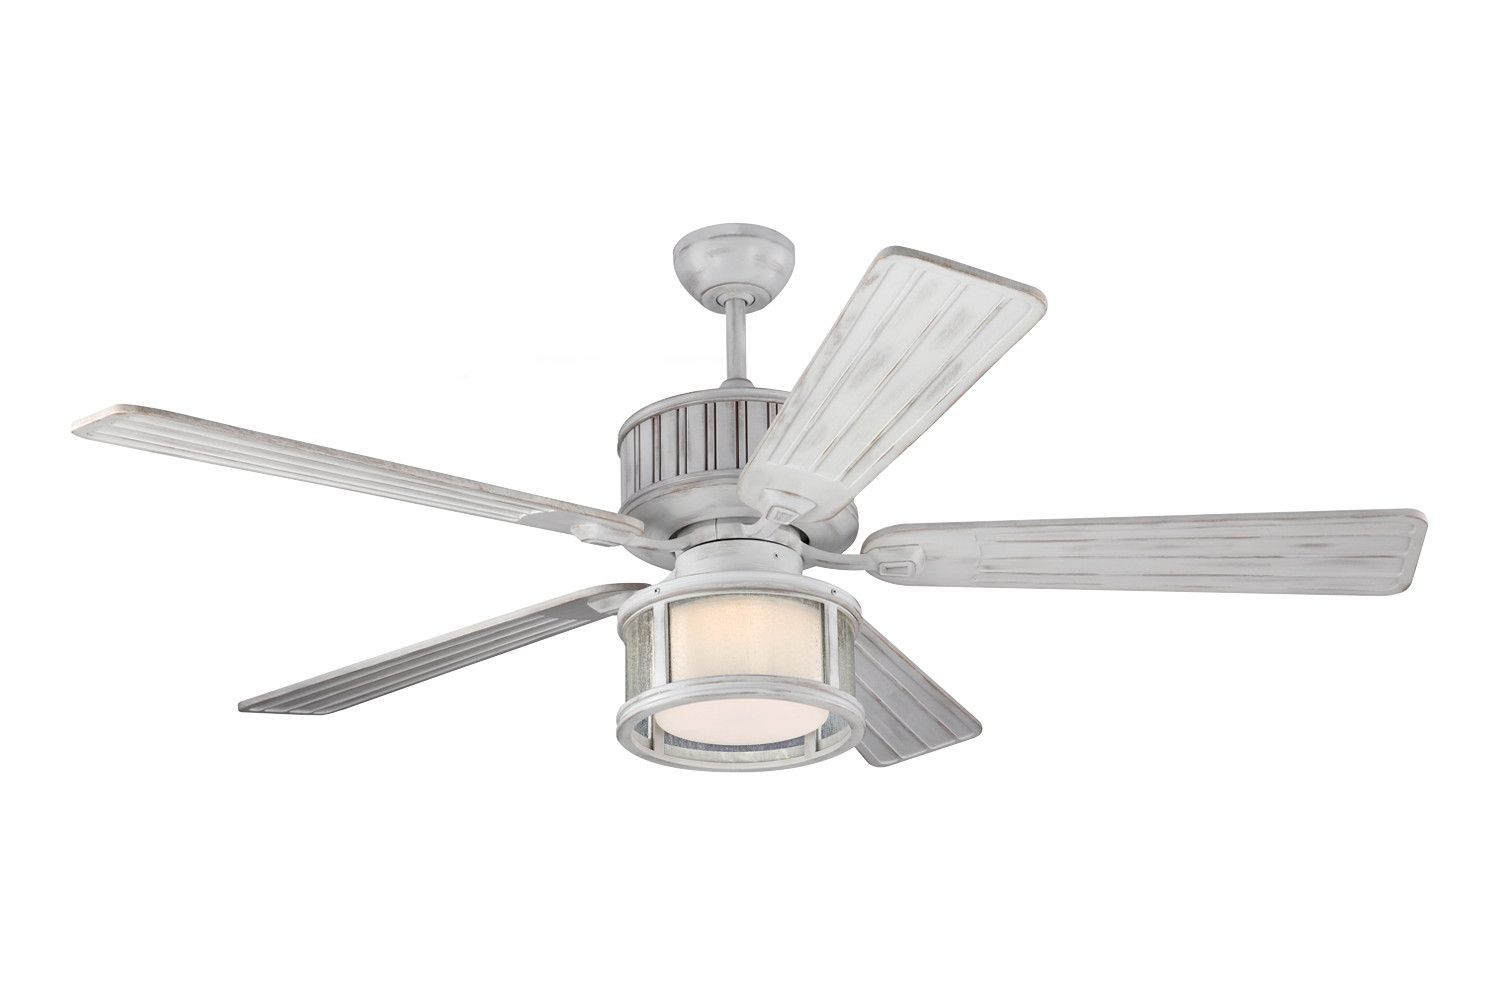 of farmhouse with lovely windmill rustic ceilings depot the elegant fan home quorum ceiling bronze style international by fans lighting lights